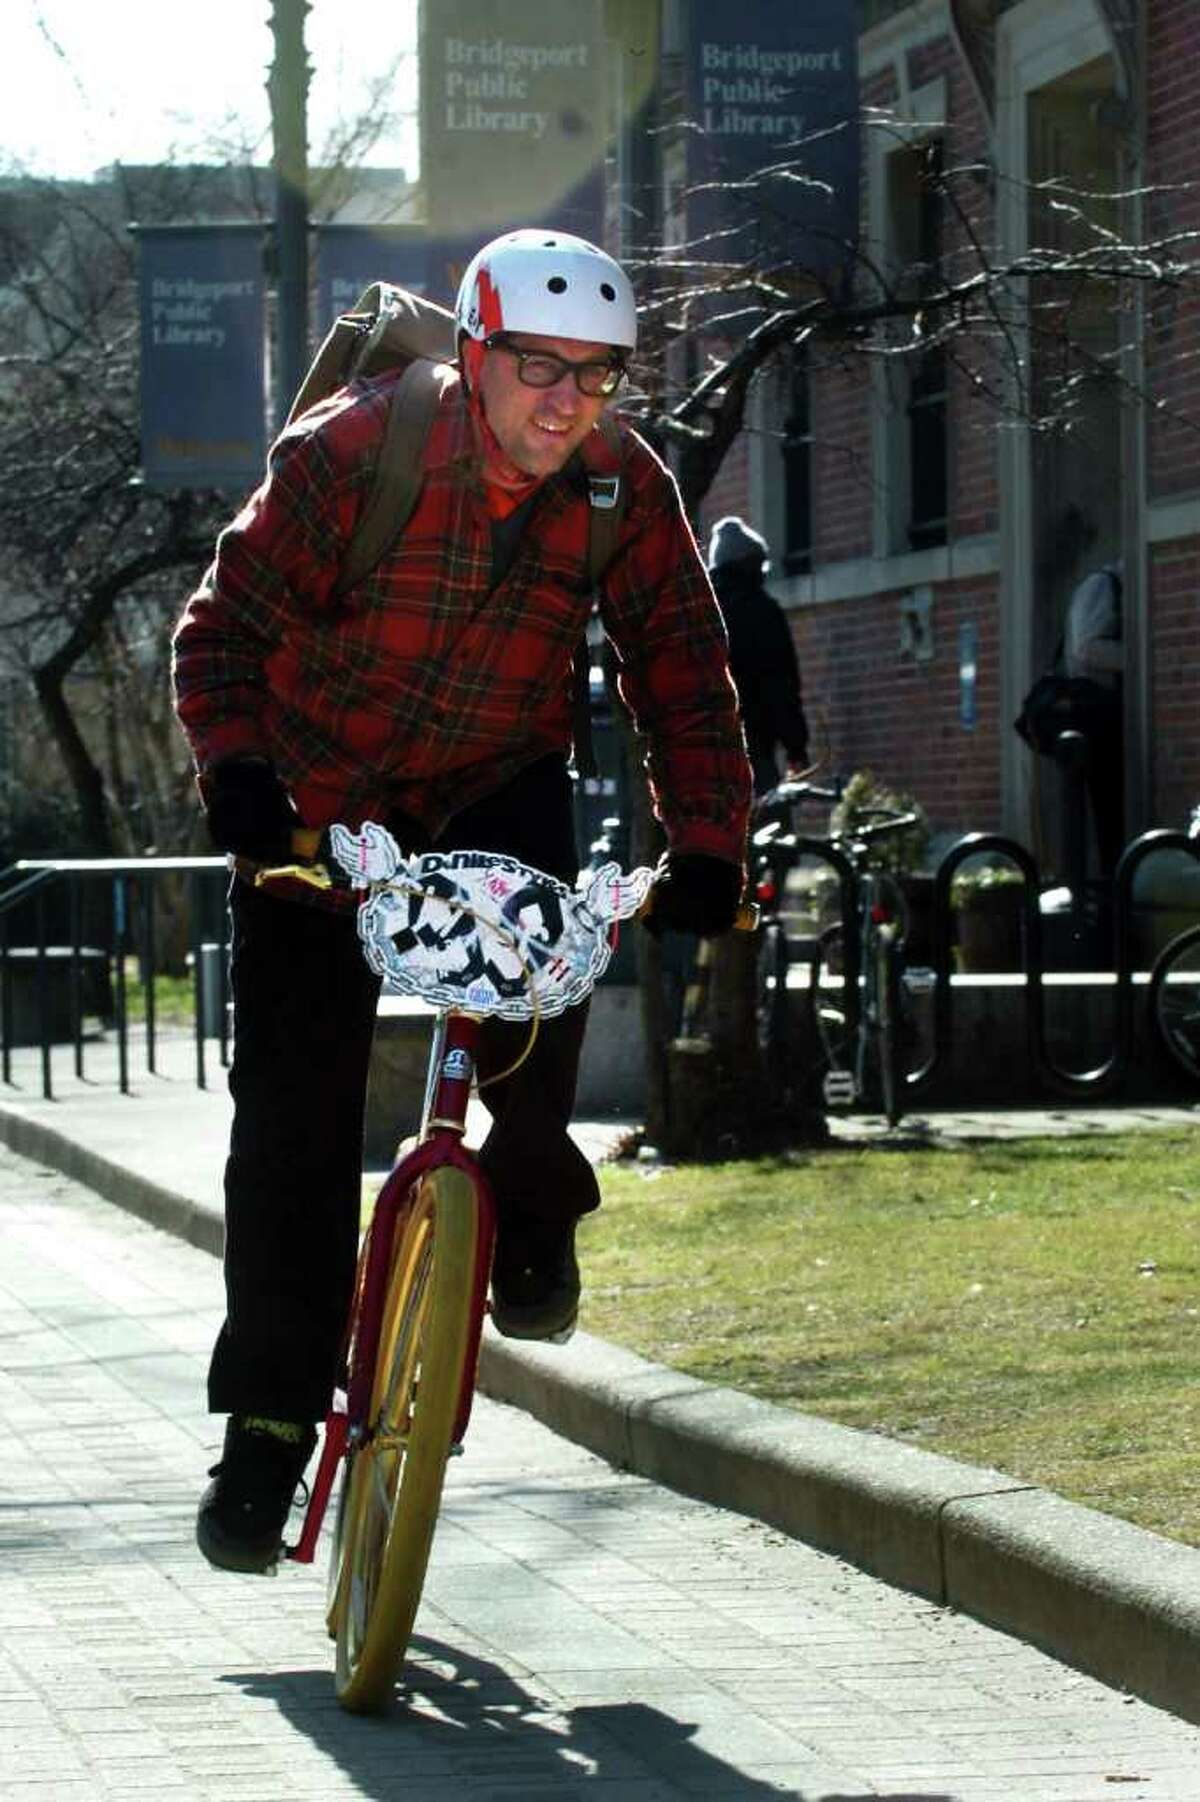 John Wilkins, of Bridgeport, rides his bicycle after returning books to the Burroughs & Saden Library in downtown Bridgeport, Conn. Feb. 10th, 2012.